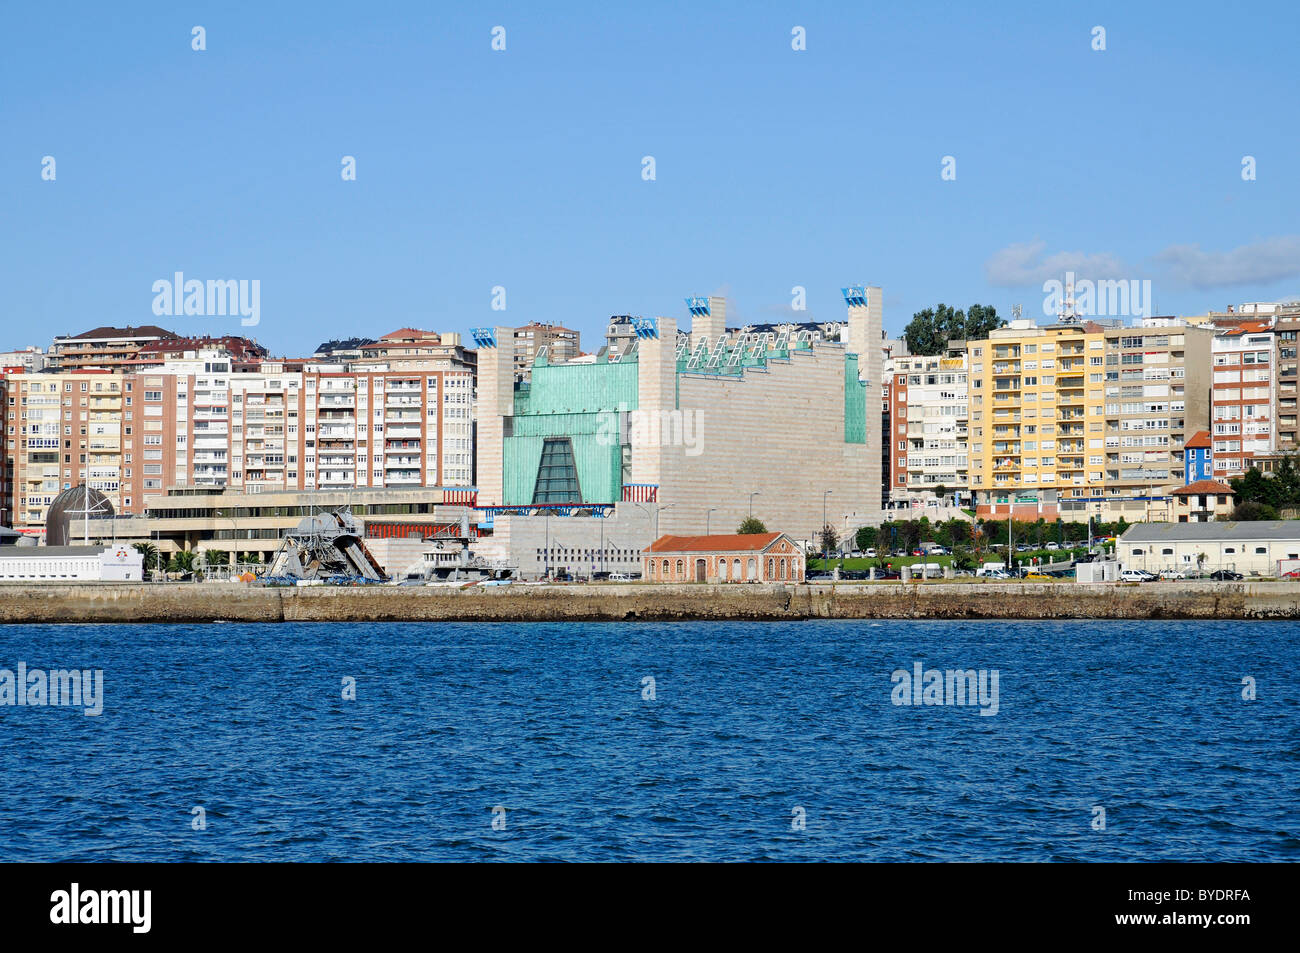 Palais des Festivals, de l'emplacement de l'événement, Santander, Cantabria, Spain, Europe Photo Stock